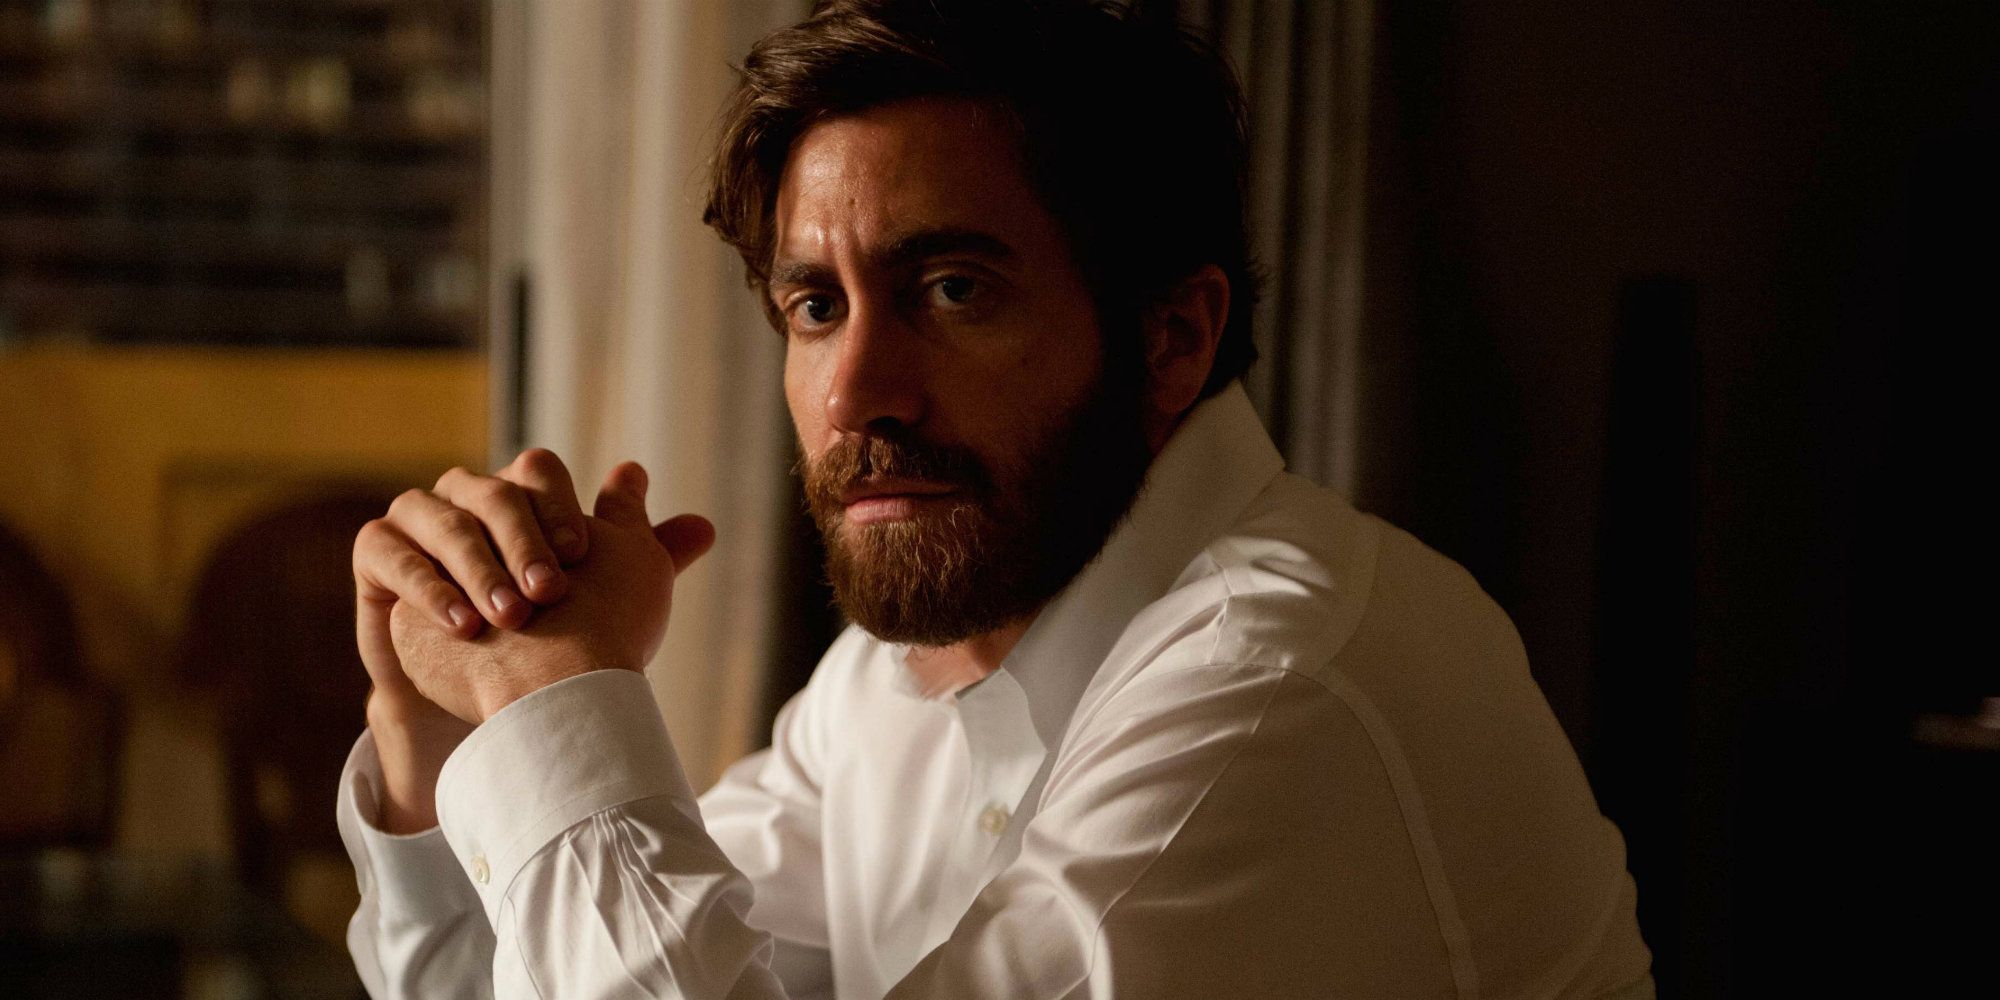 Jake Gyllenhaal Reuniting With Director Denis Villeneuve For New Movie